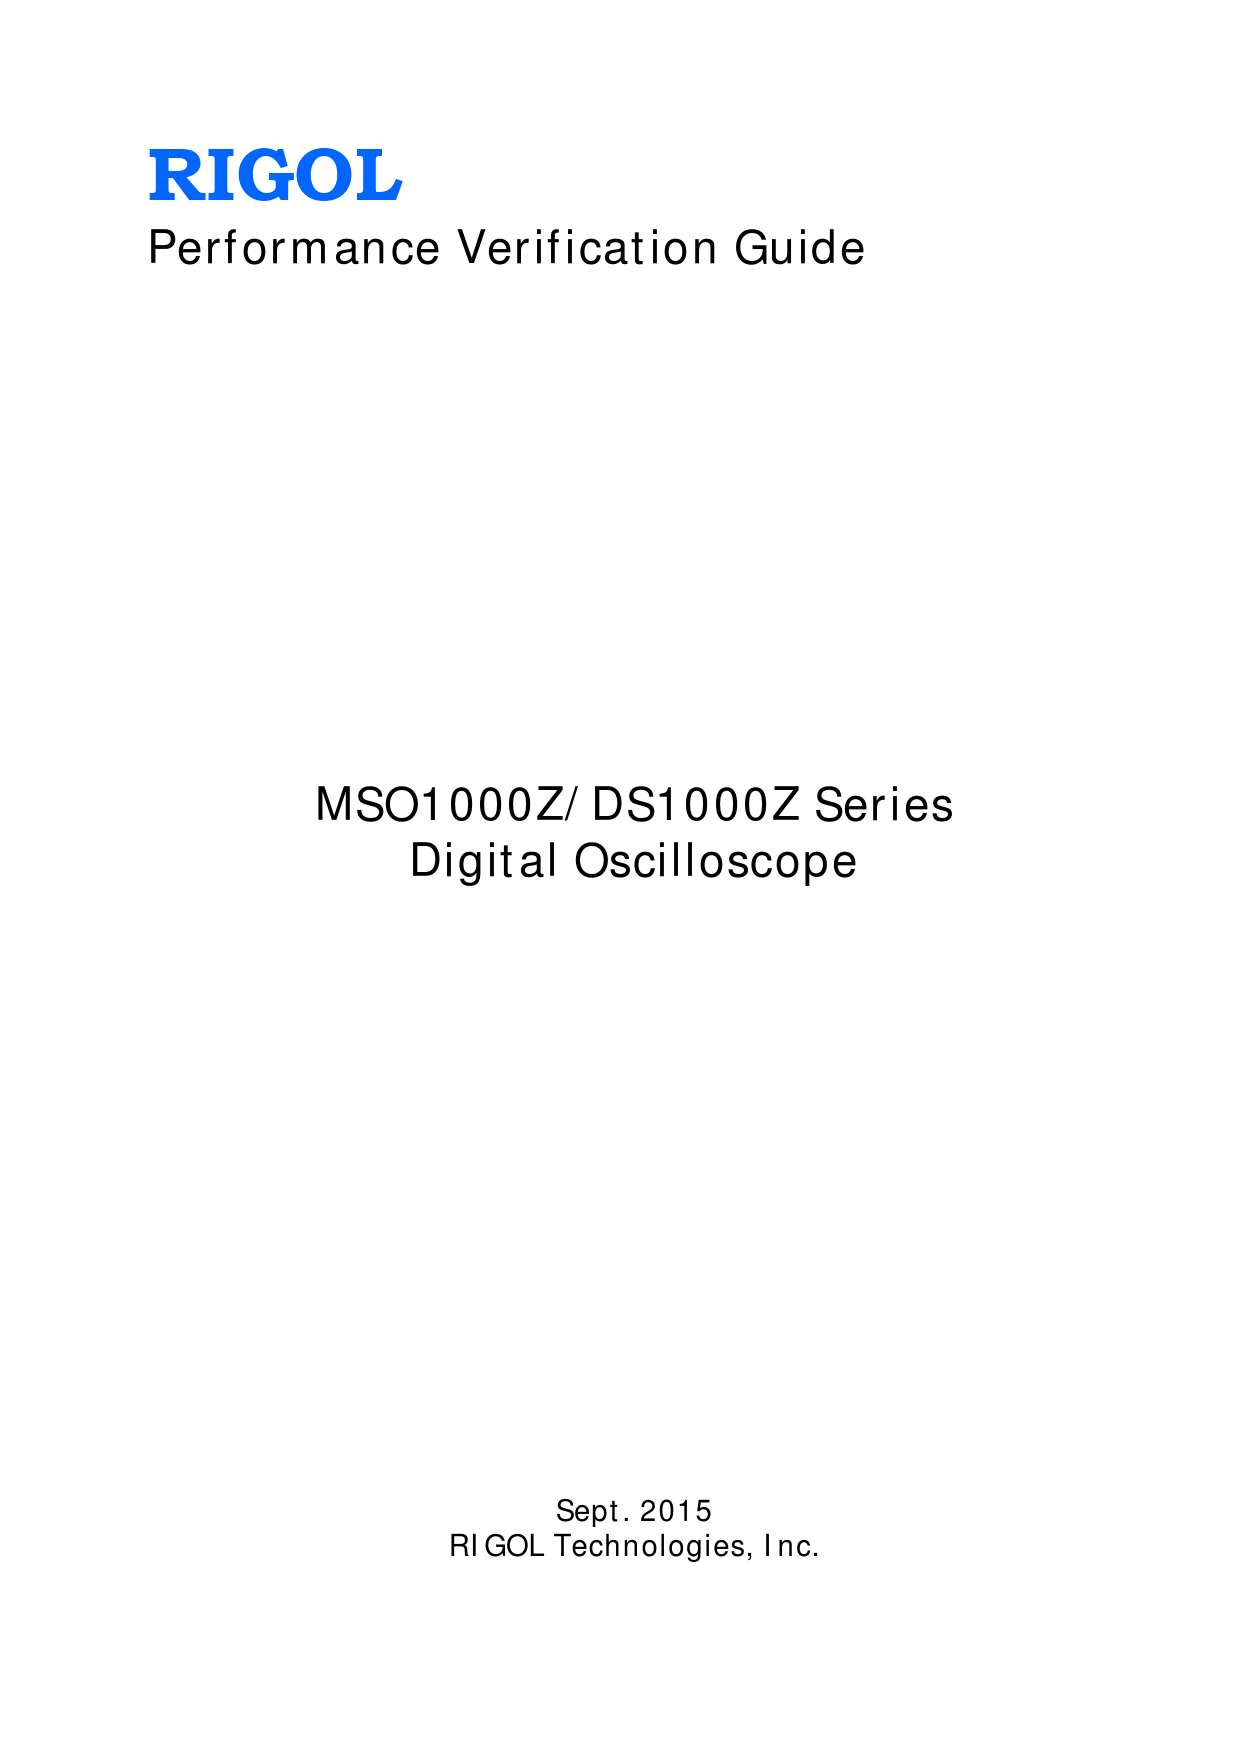 Performance Verification Guide MSO1000Z/DS1000Z Series Rigol